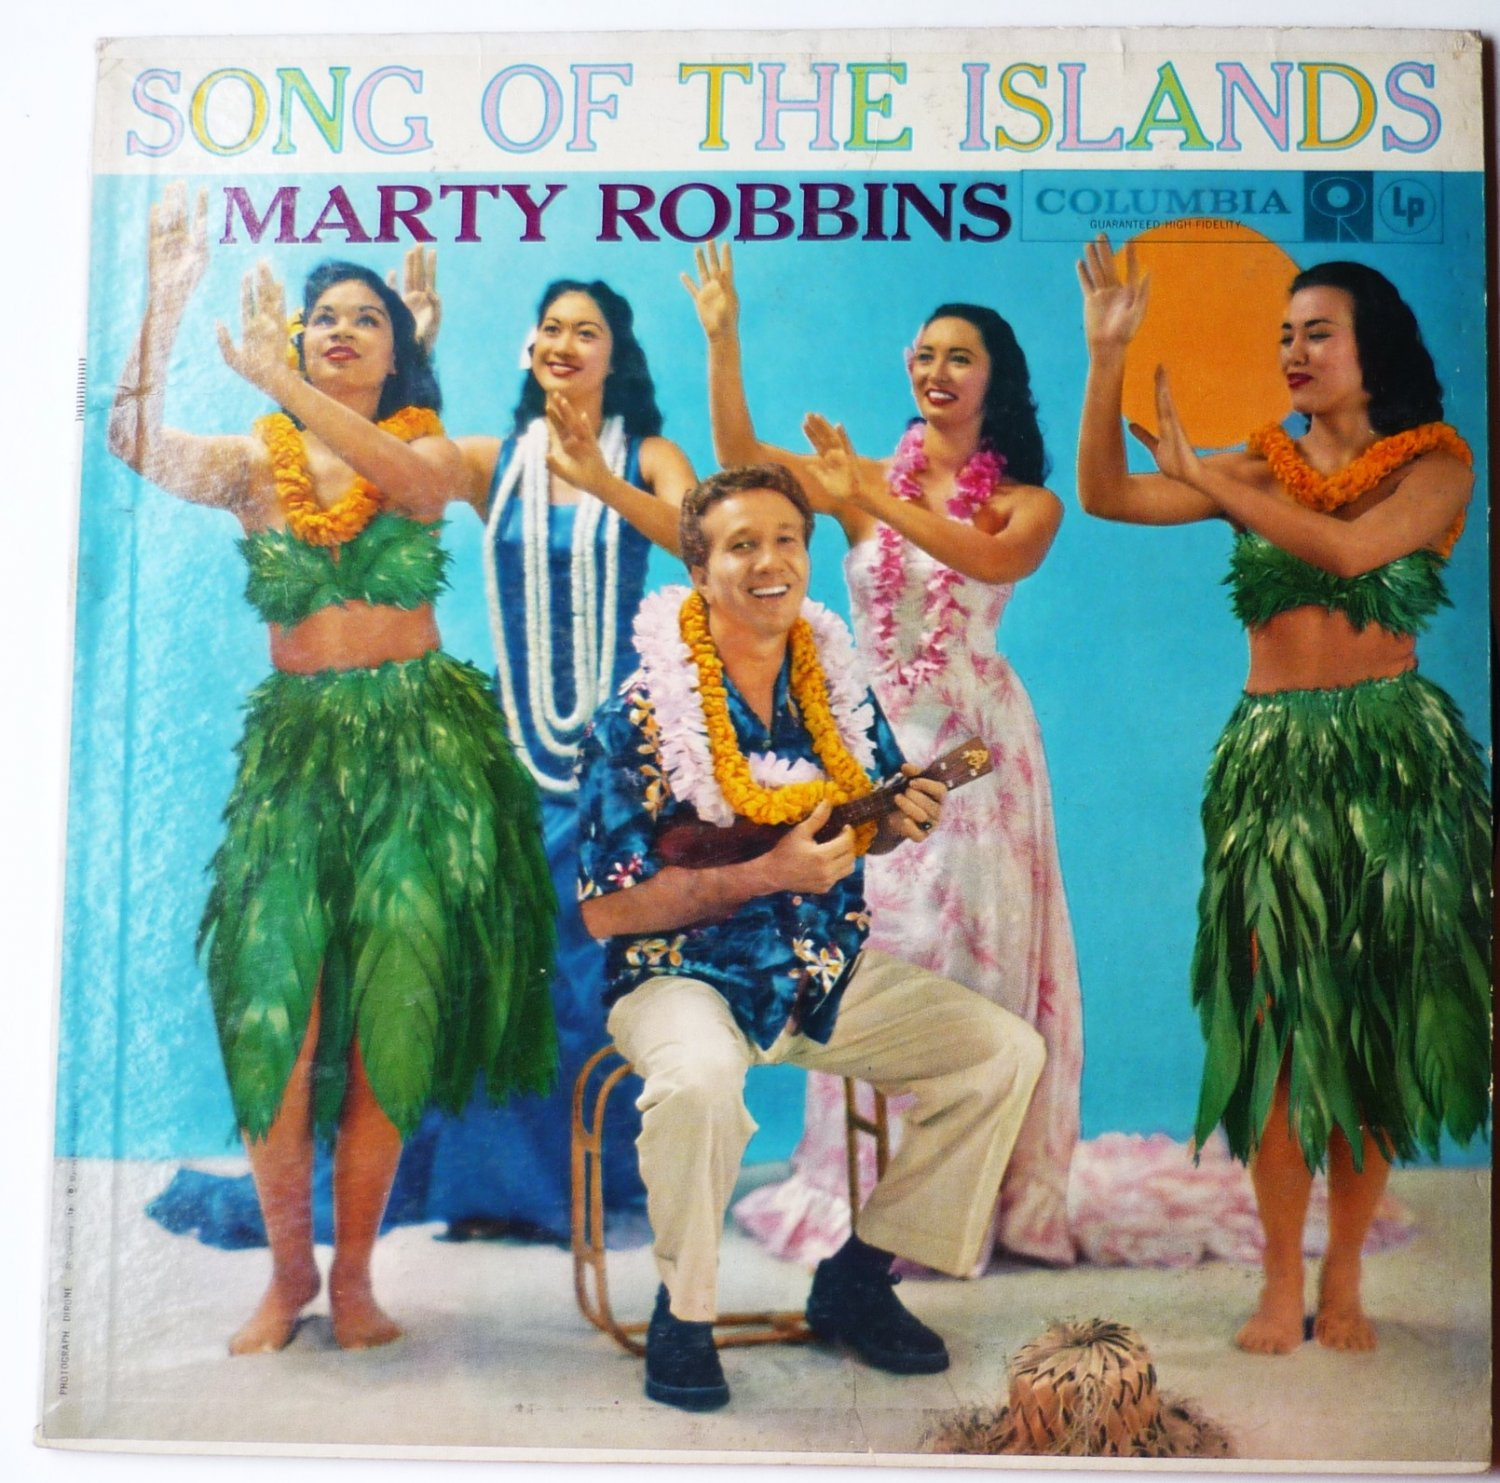 Marty Robbins - Song of the Islands lp